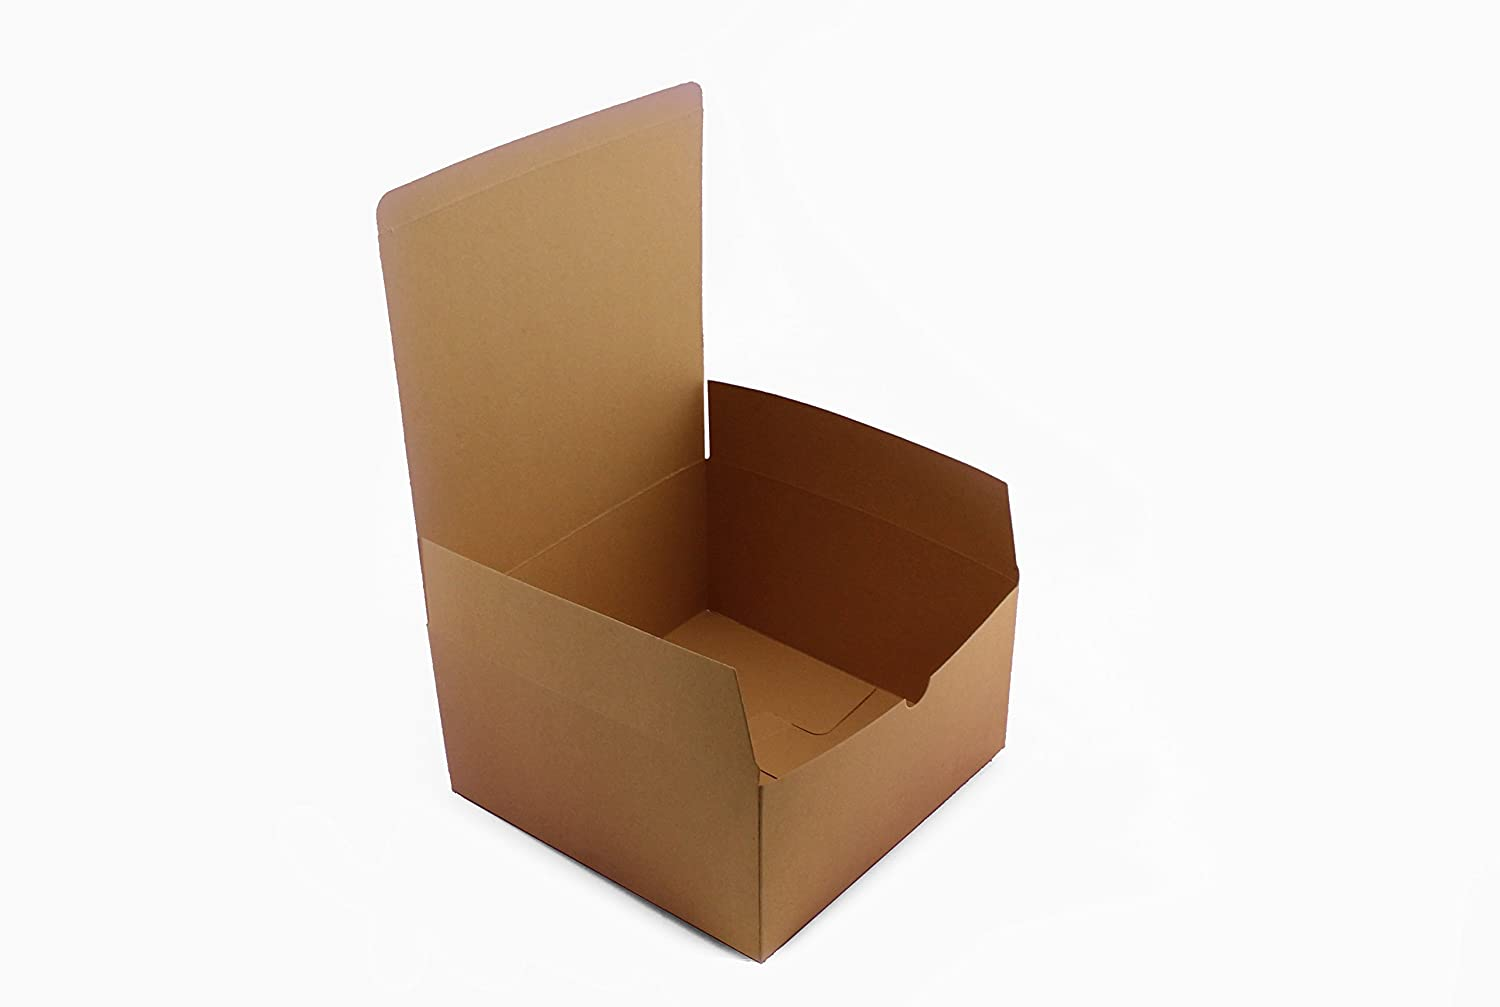 Adorox 10 Pack 8 X 8 X 4 Inches Kraft Boxes Cardboard Gift Box With Lids For Wedding Birthday Holiday Baby Shower Favor Brown 8 X 8 X 4